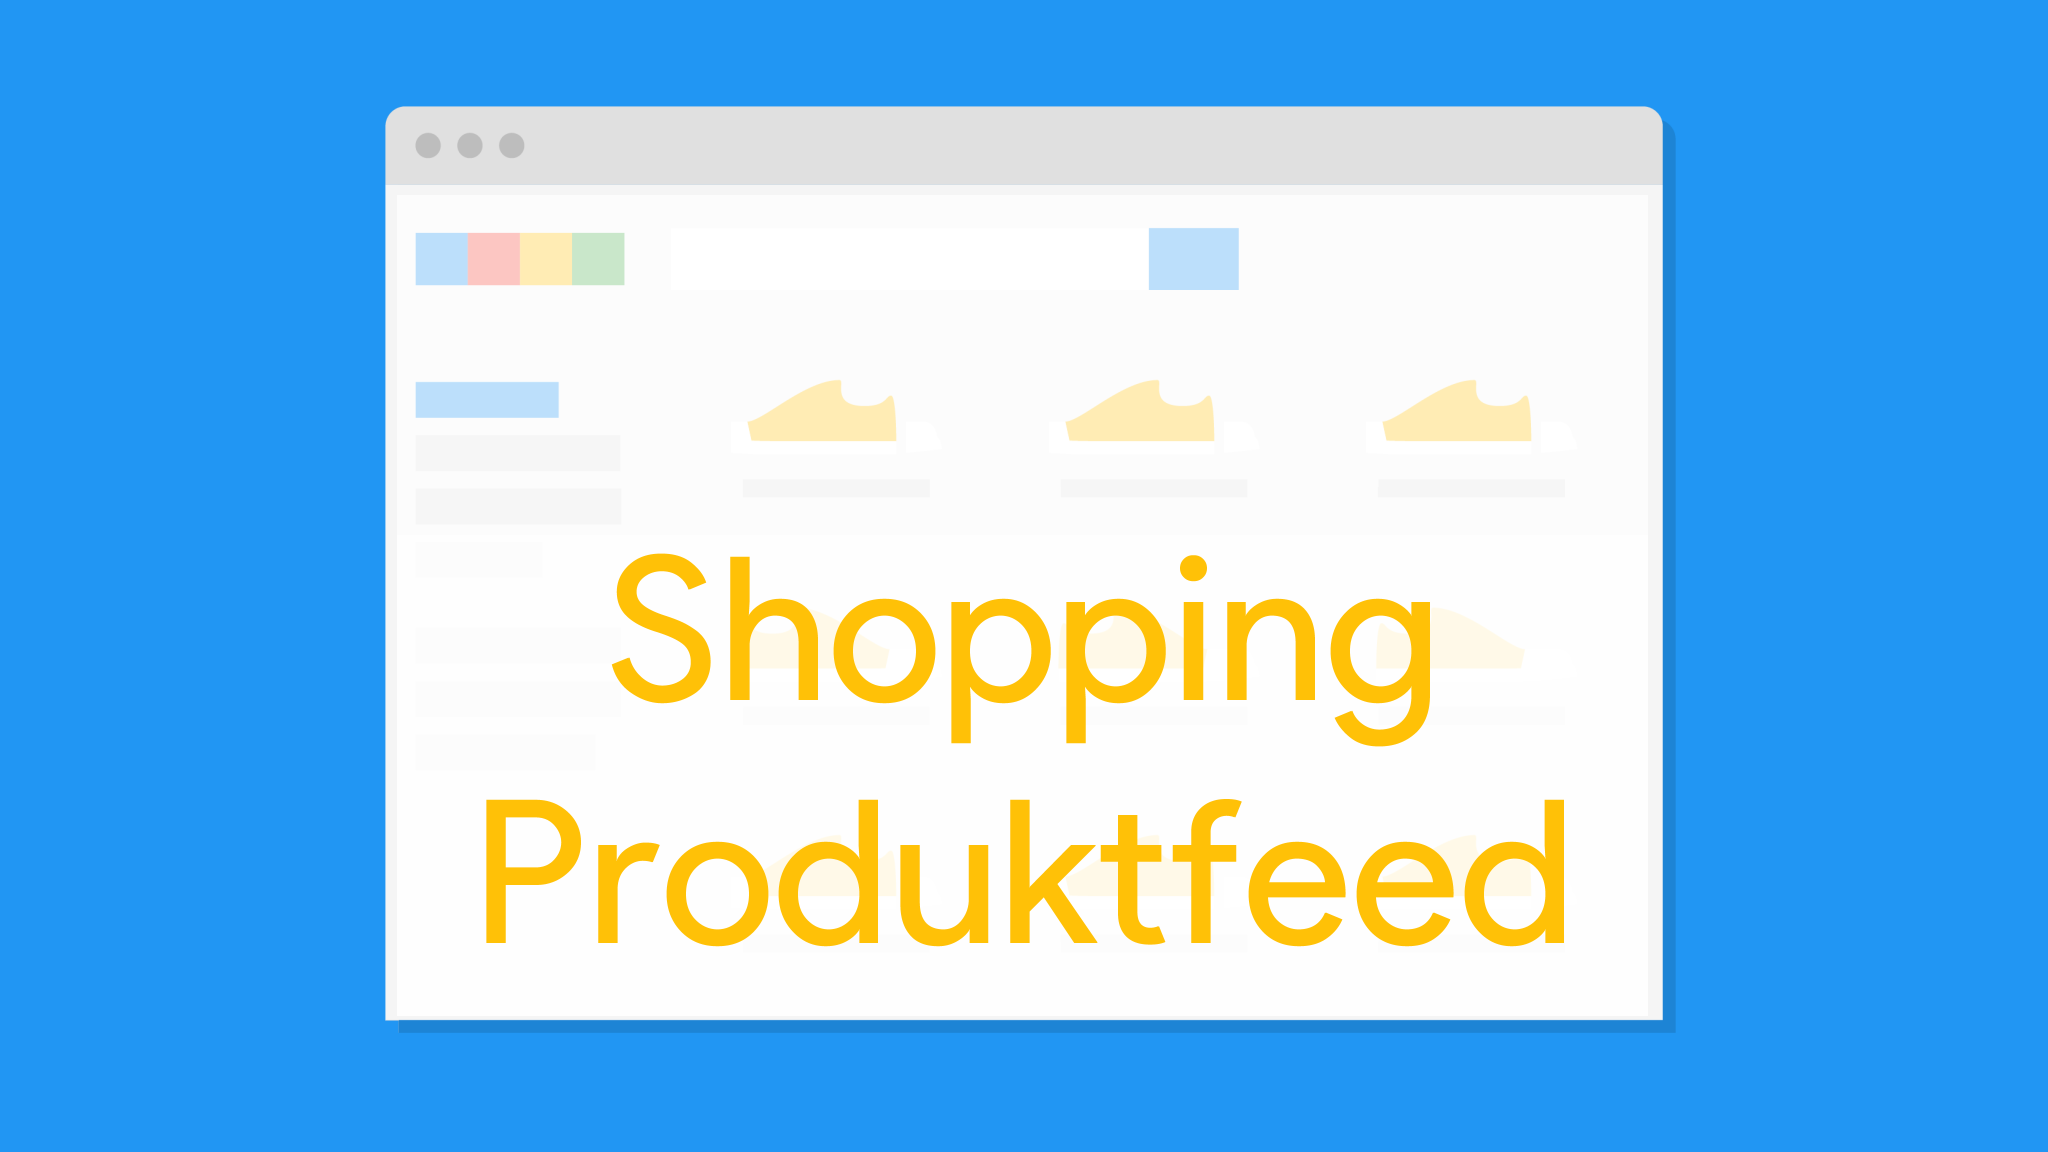 Google Shopping Produktfeed